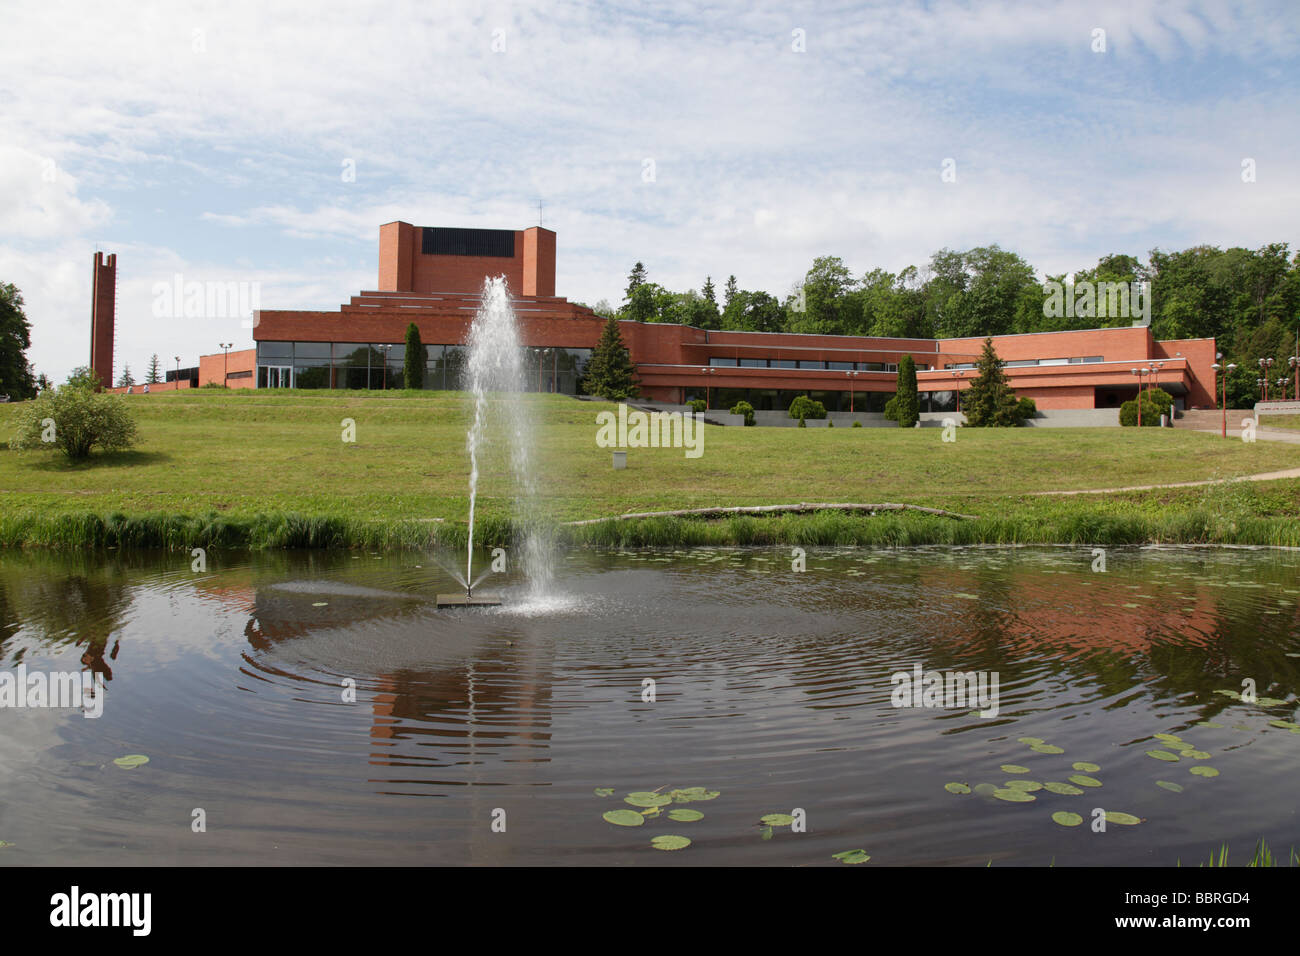 lake and fountain at the Ugala theatre at the city of Viljandi, Estonia, Baltic Nation, Eastern Europe.  Photo by - Stock Image